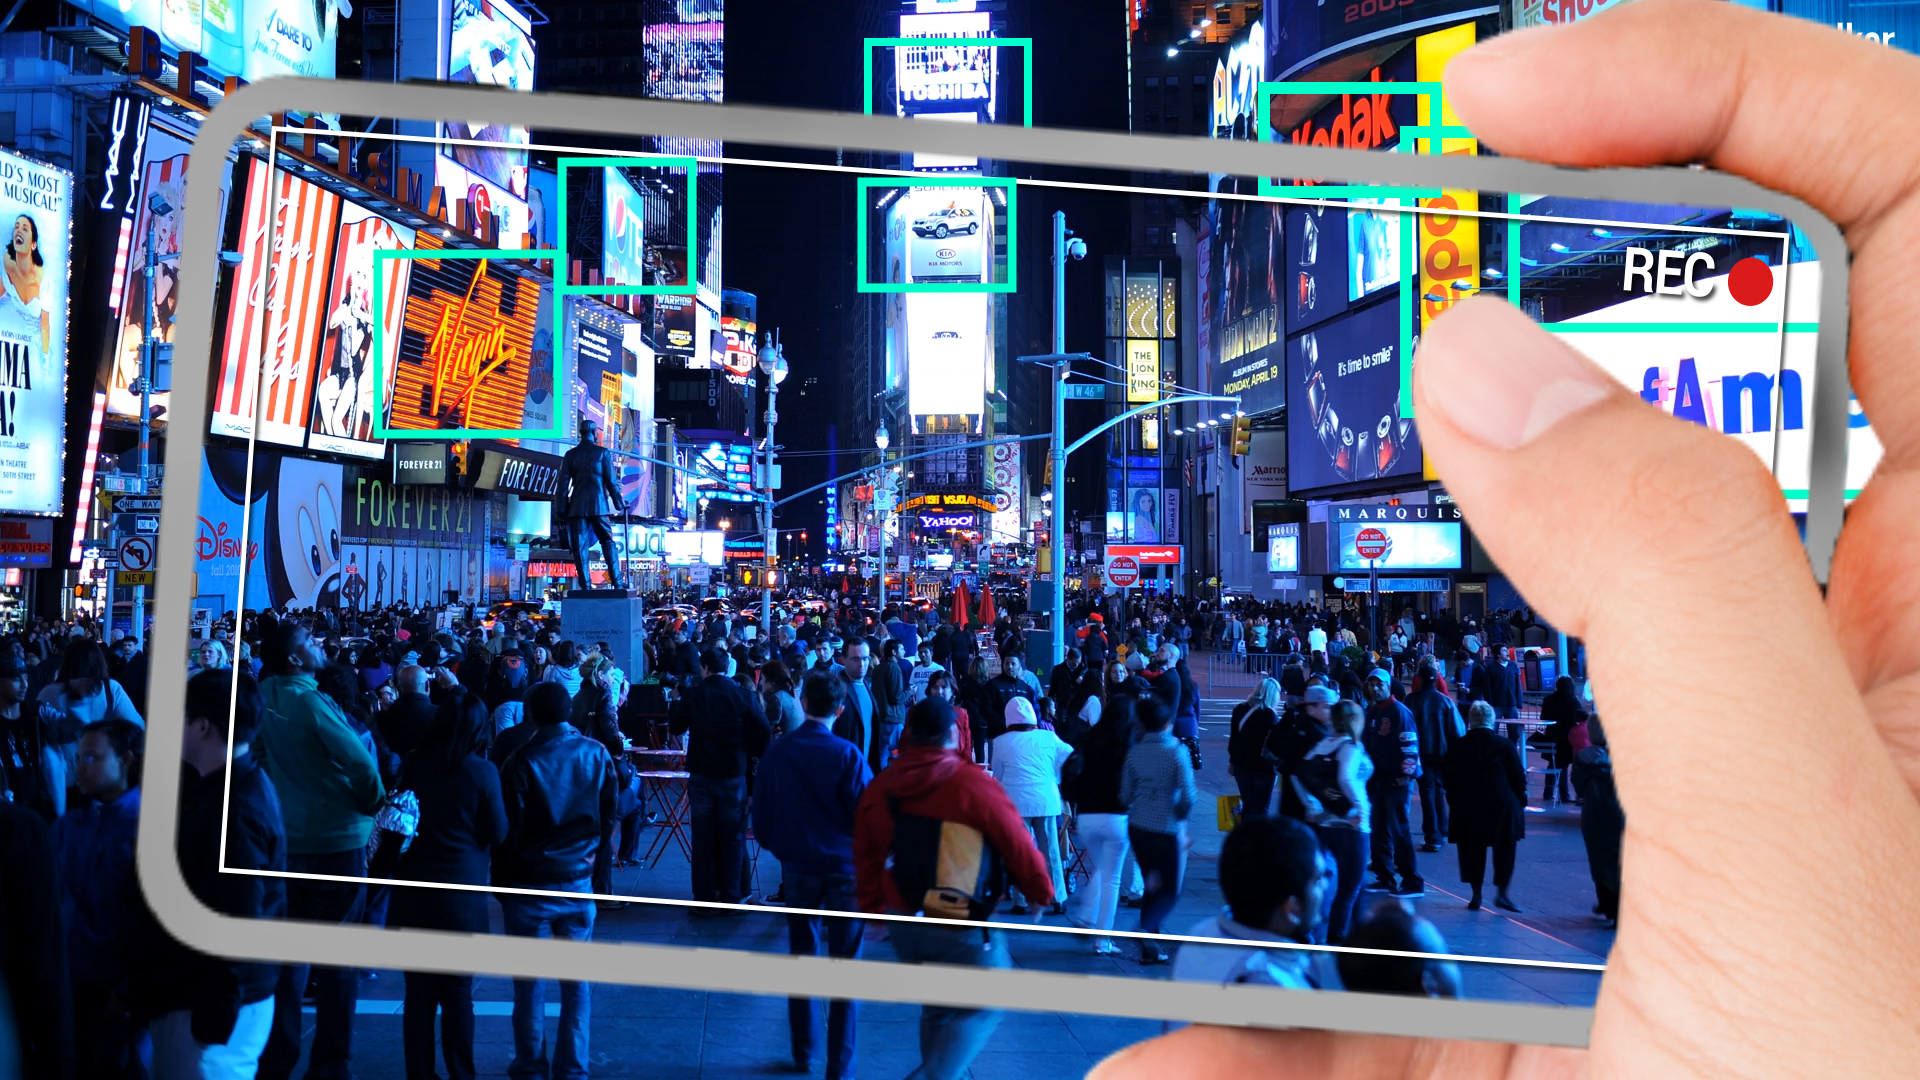 Video recognition - The future of marketing and a 1st for social listening